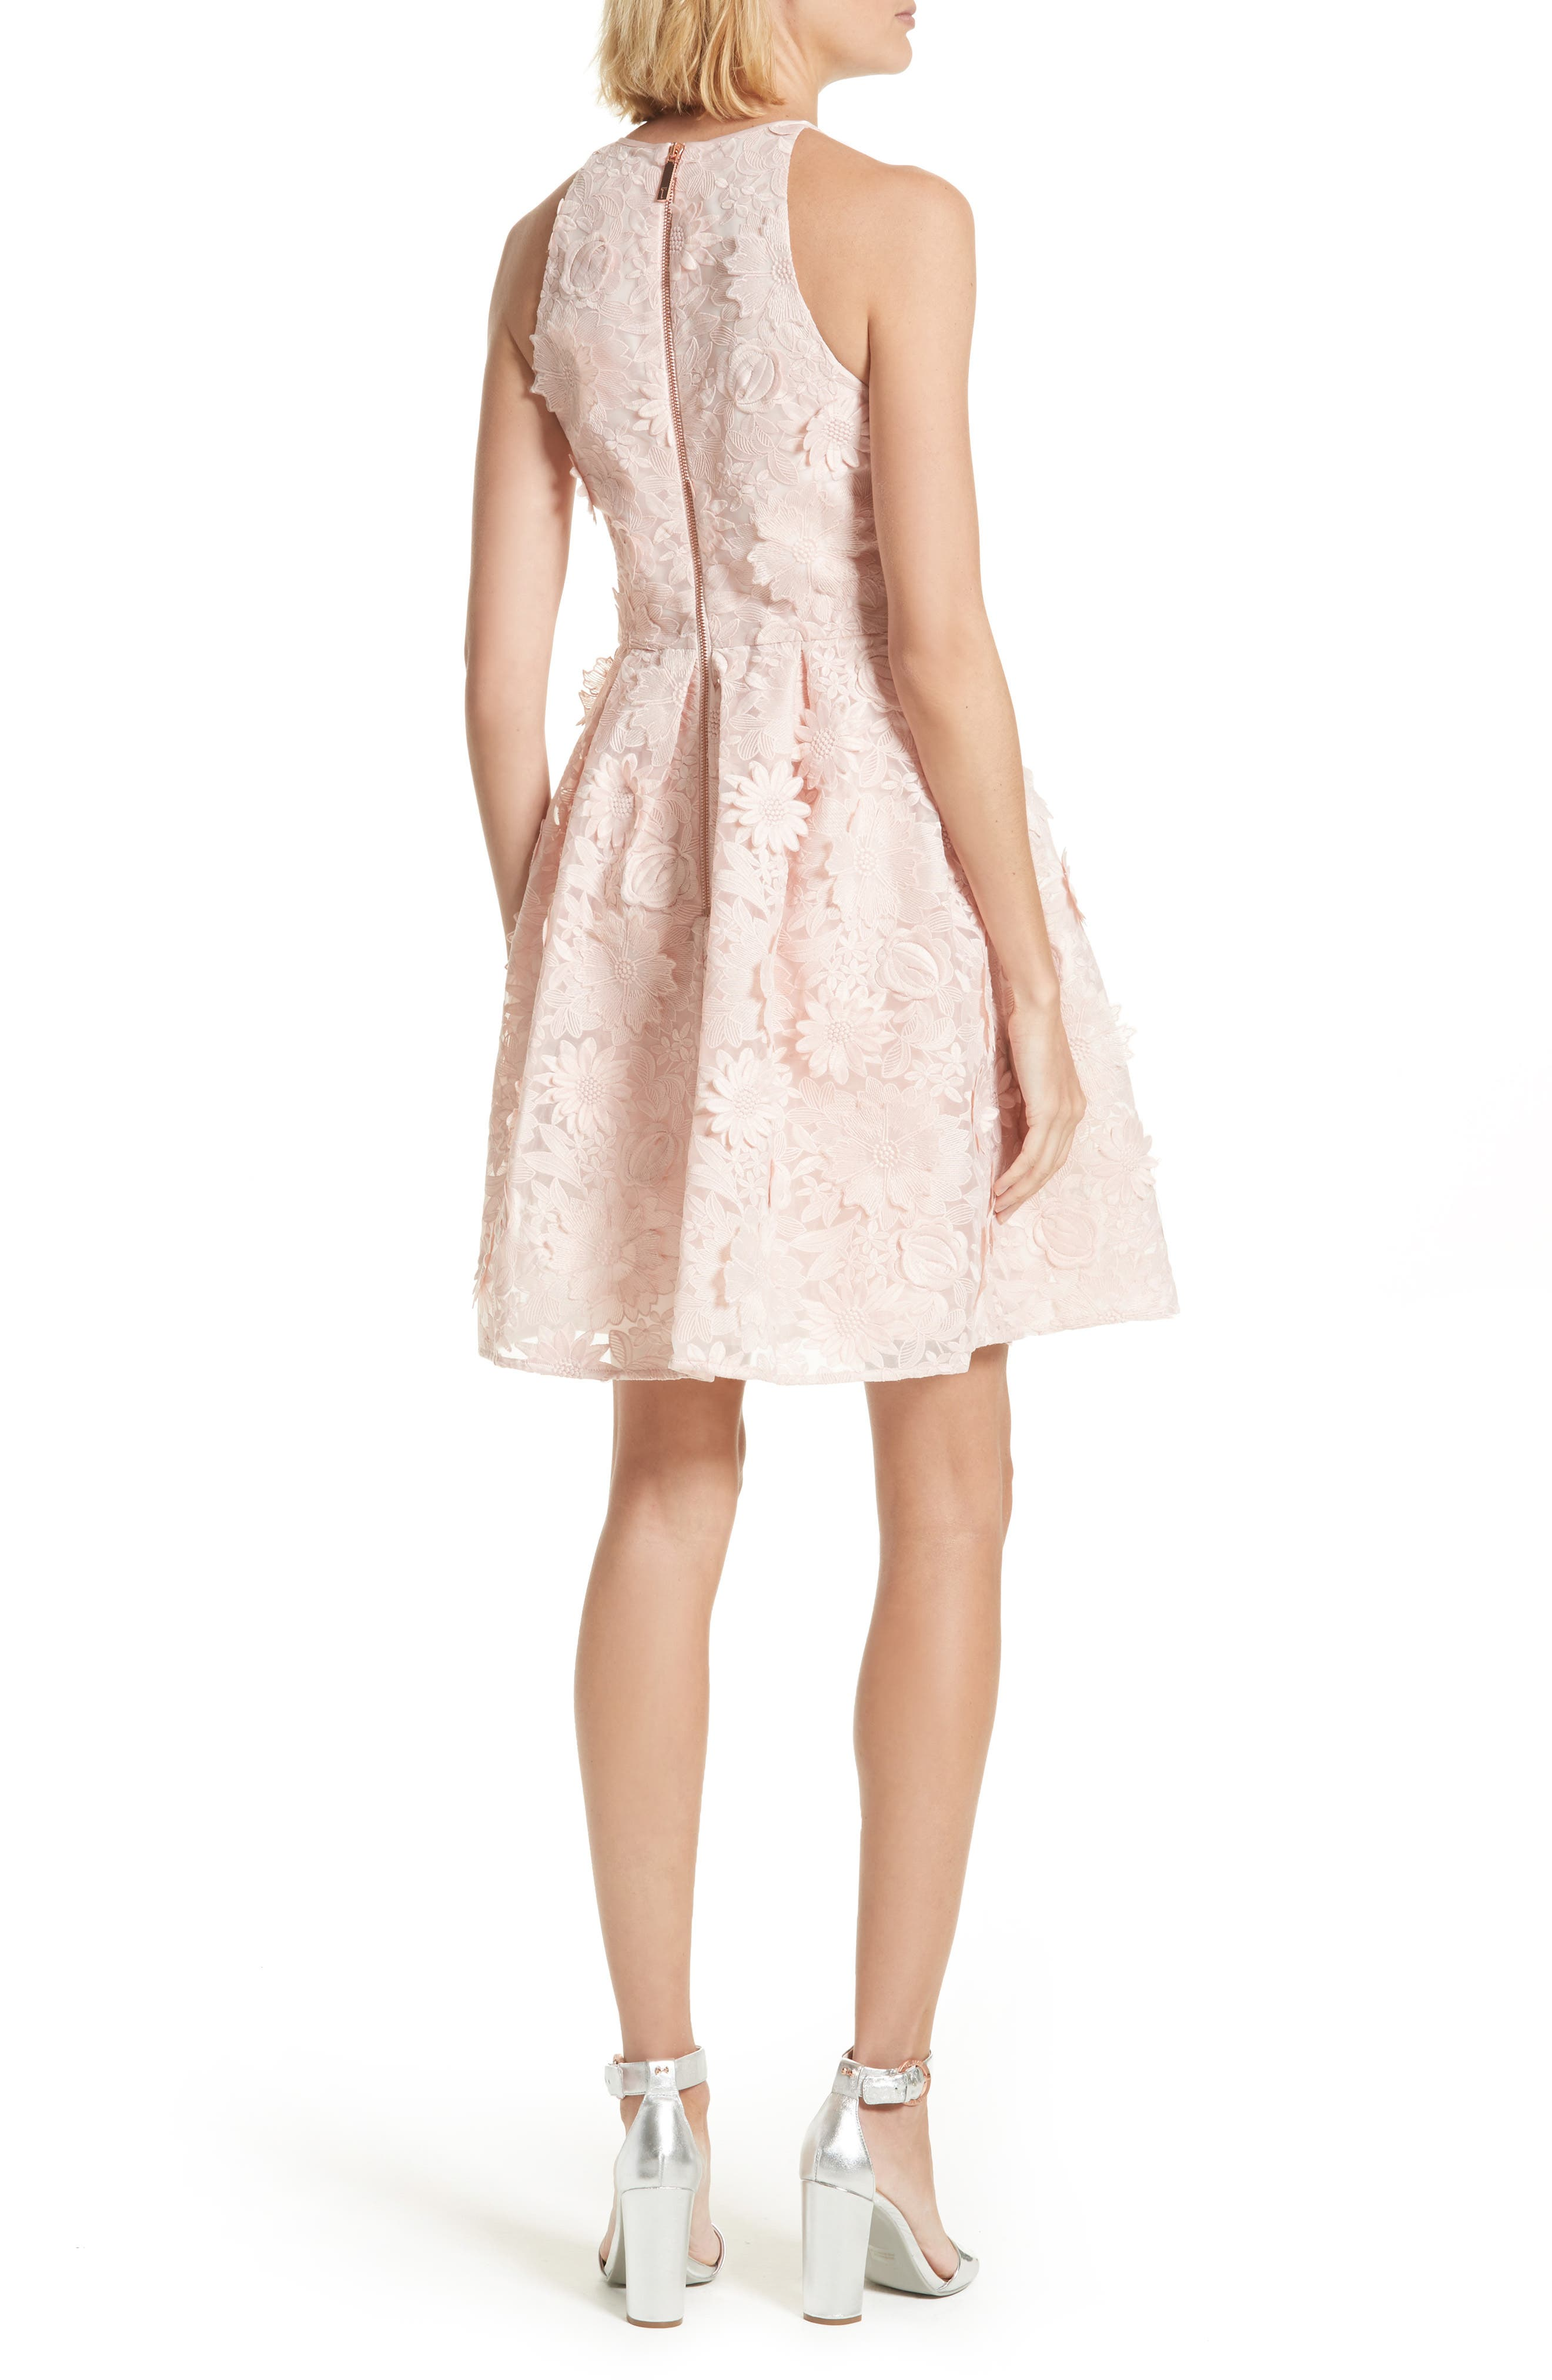 Sweetee Lace Skater Dress,                             Alternate thumbnail 2, color,                             Baby Pink